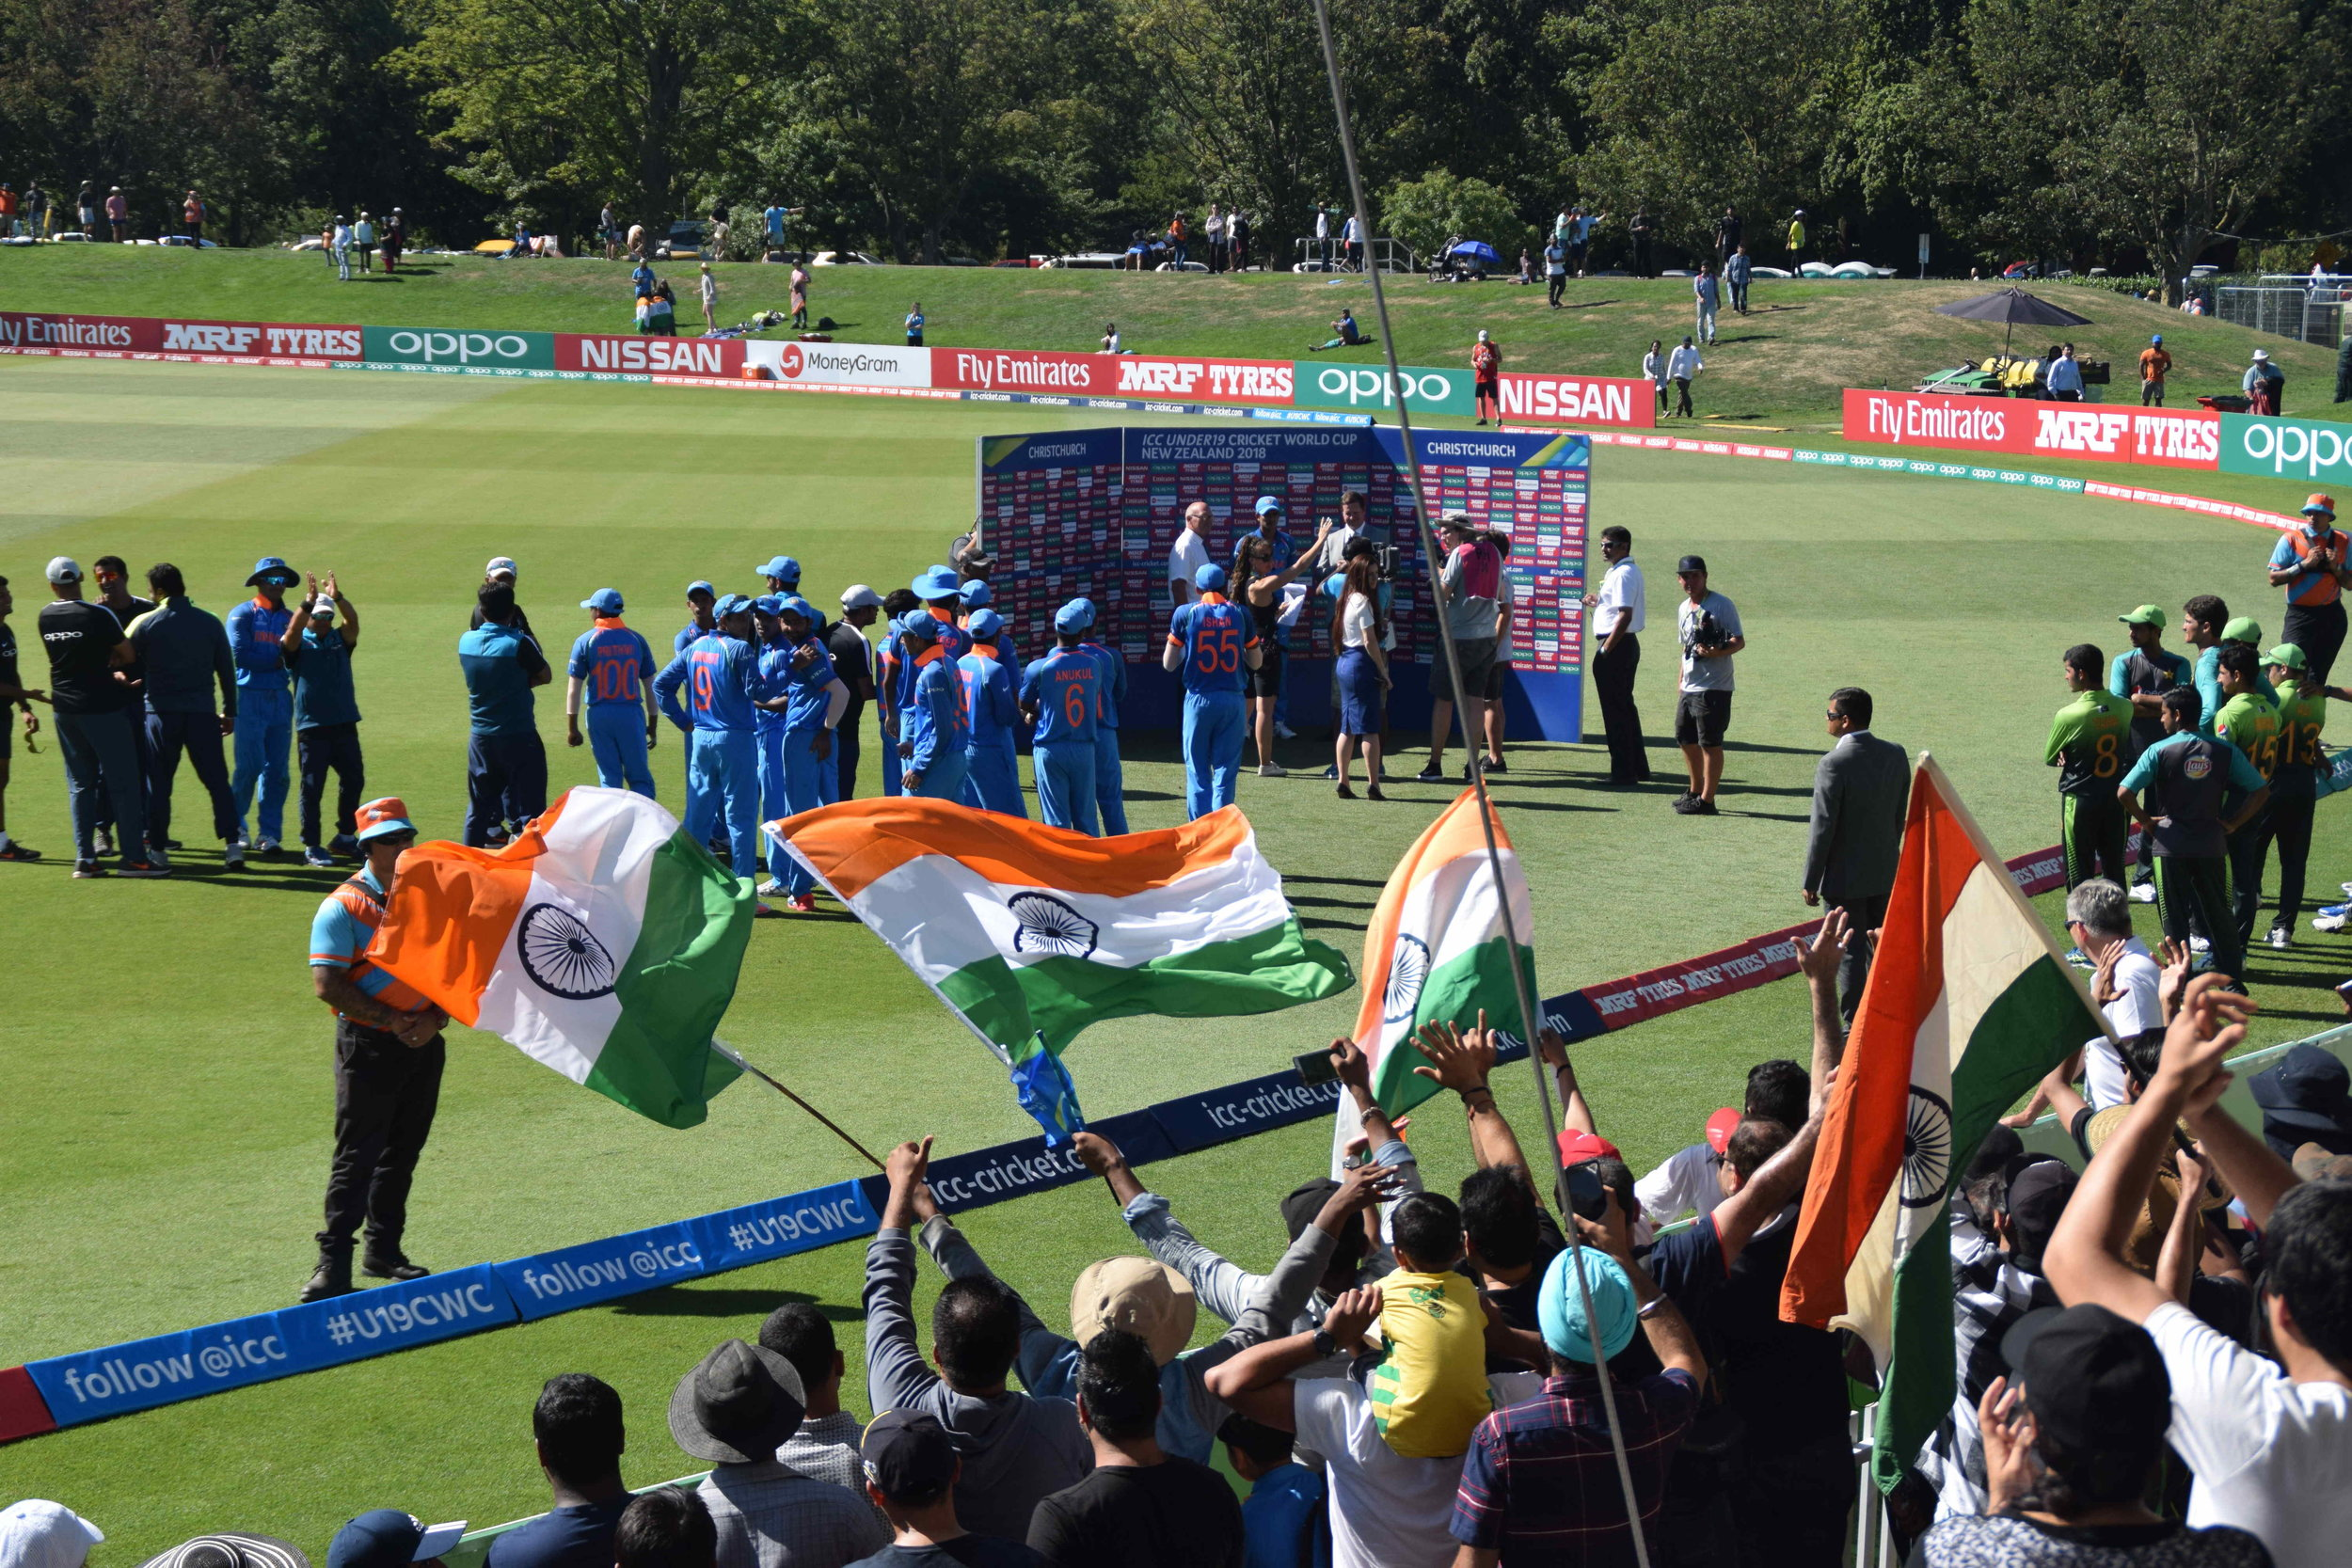 Indian flag flew high in Christchurch on Tuesday as India beat Pakistan by 203 runs to storm into the Under19s Cricket World Cup to set up a summit clash with Australia on Saturday